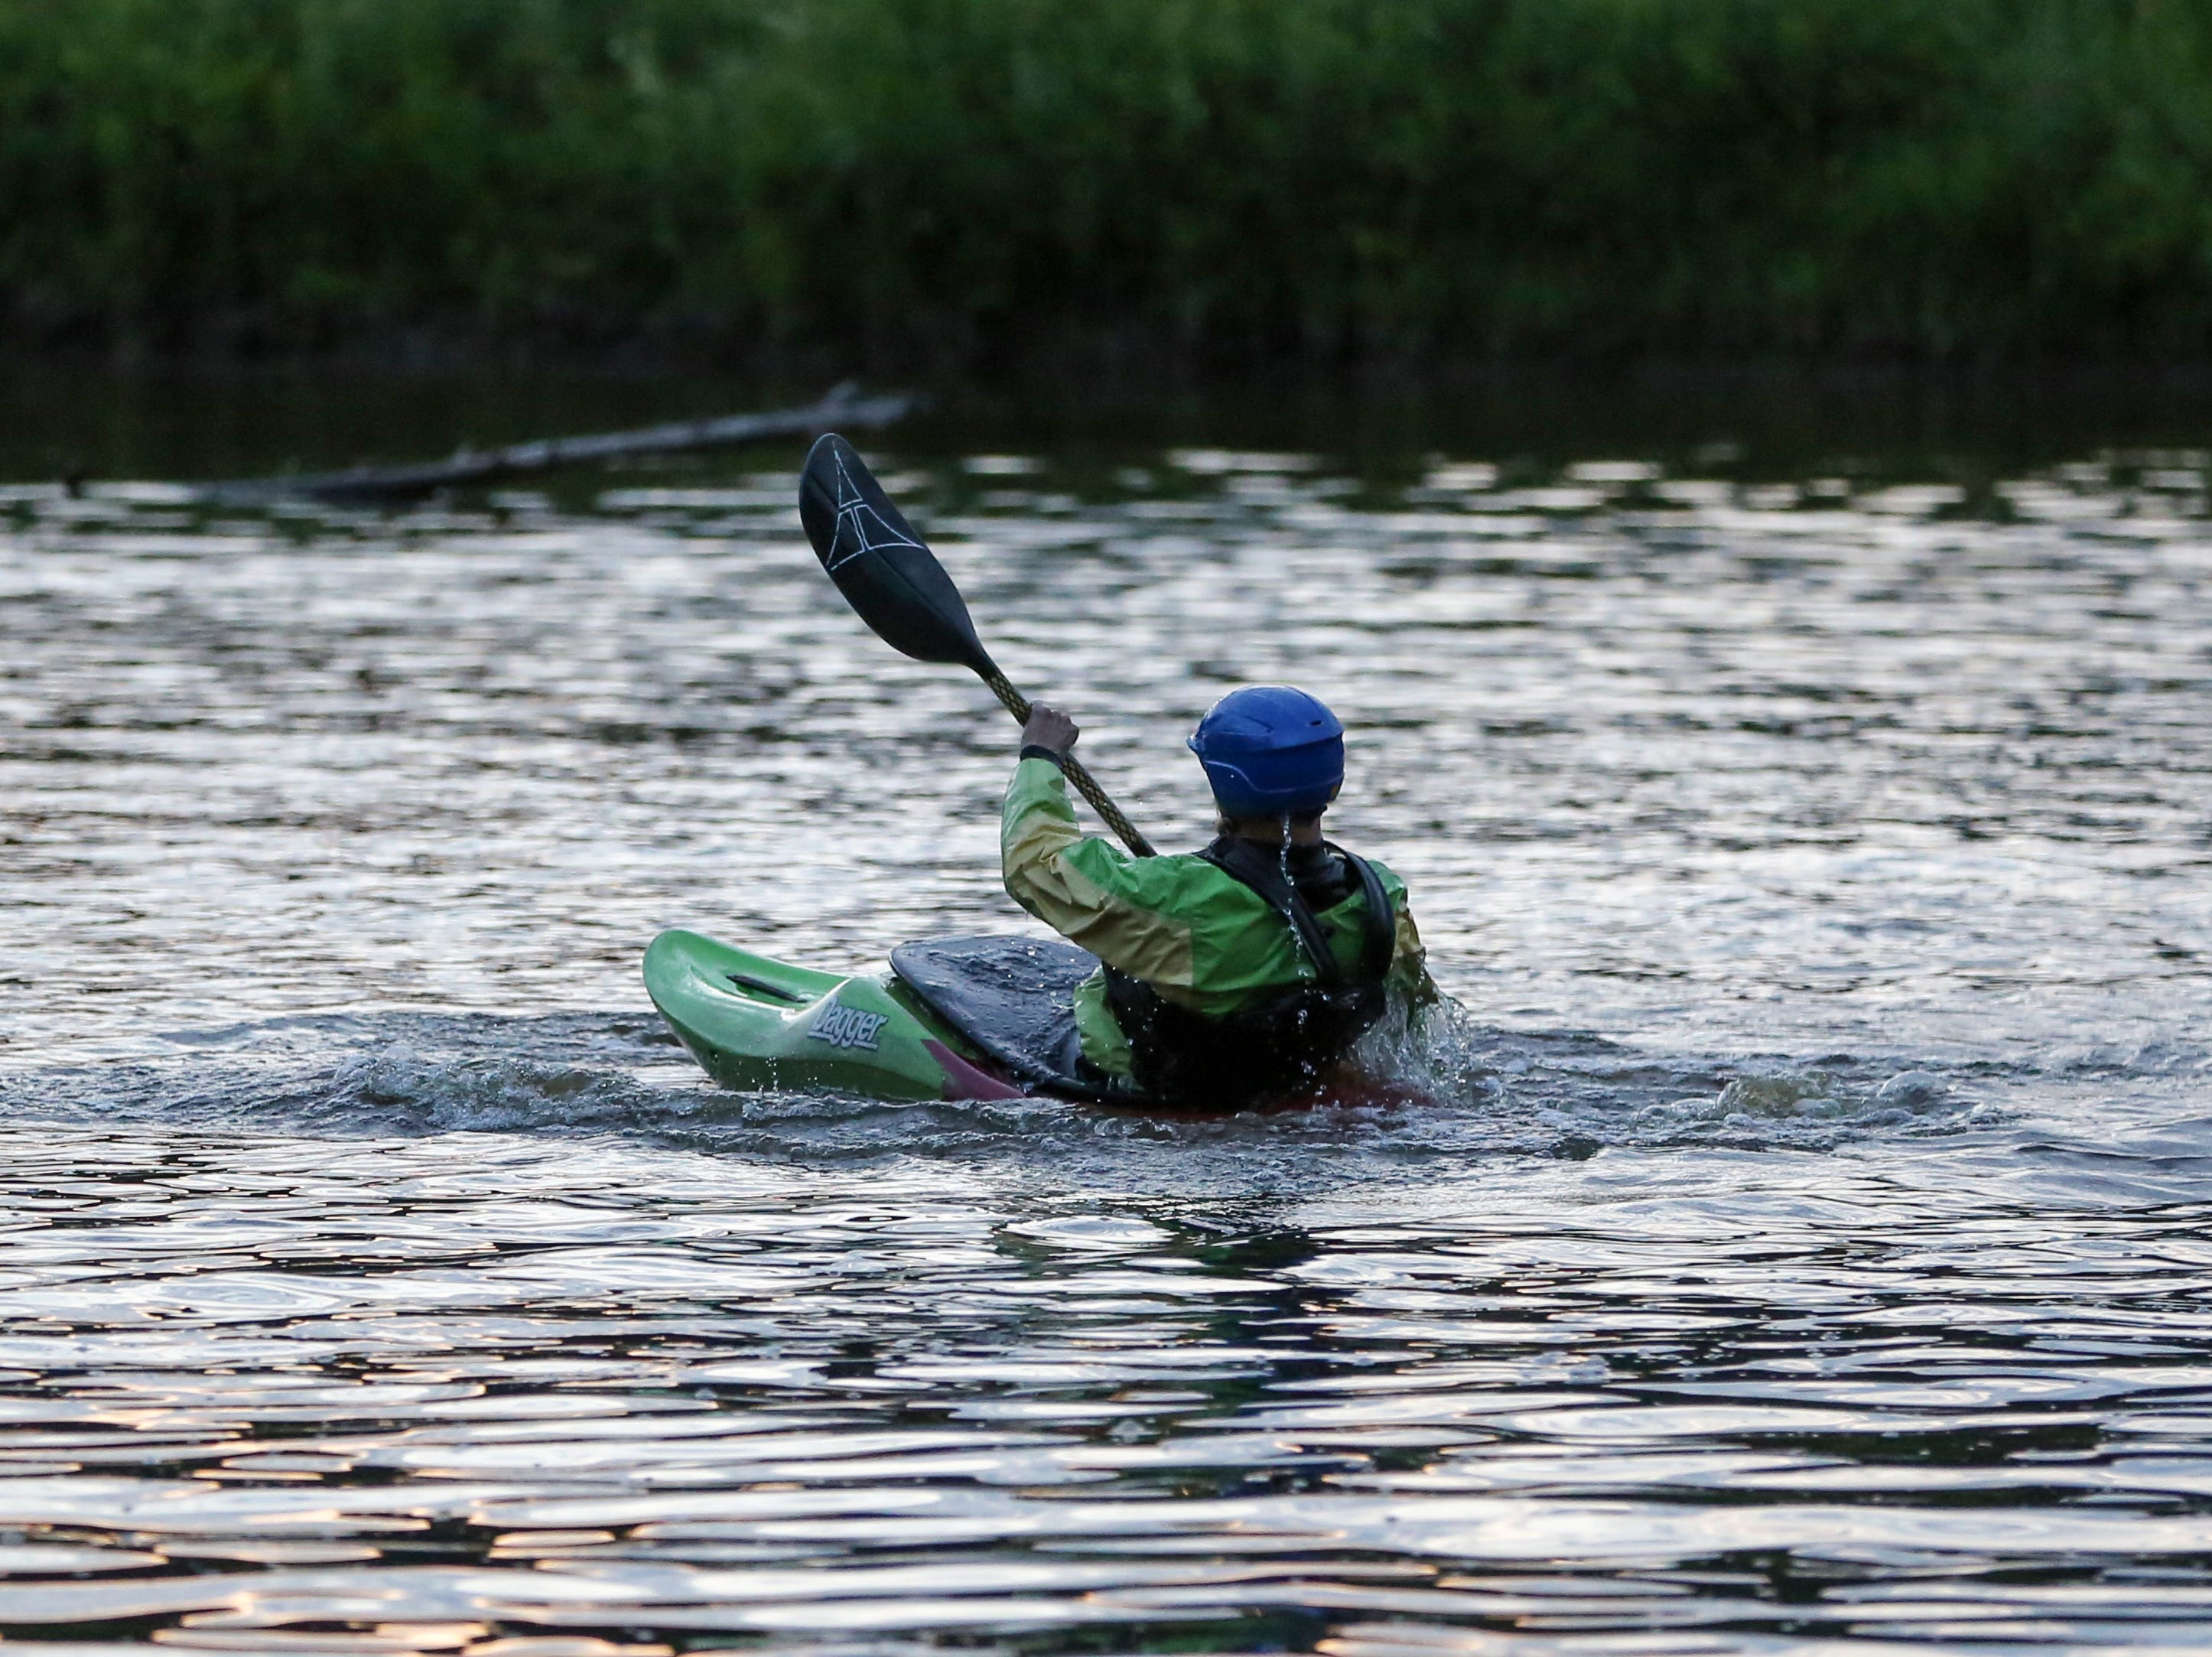 Scenes from a moonlight paddle on the Manitowoc River Friday, July 27, 2018, in Manitowoc, Wis. Josh Clark/USA TODAY NETWORK-Wisconsin